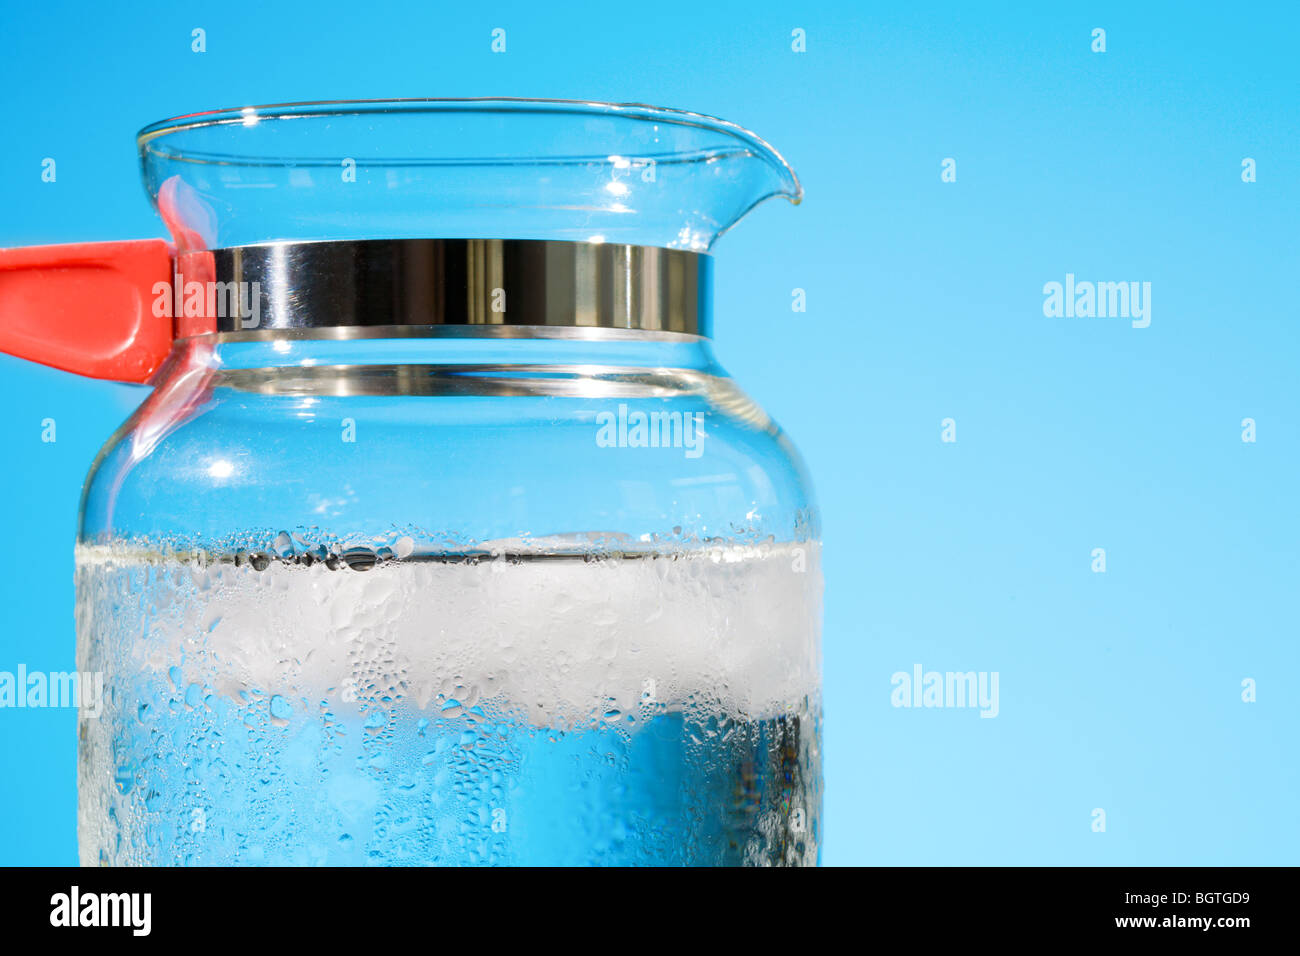 Pitcher with water and ice - Stock Image